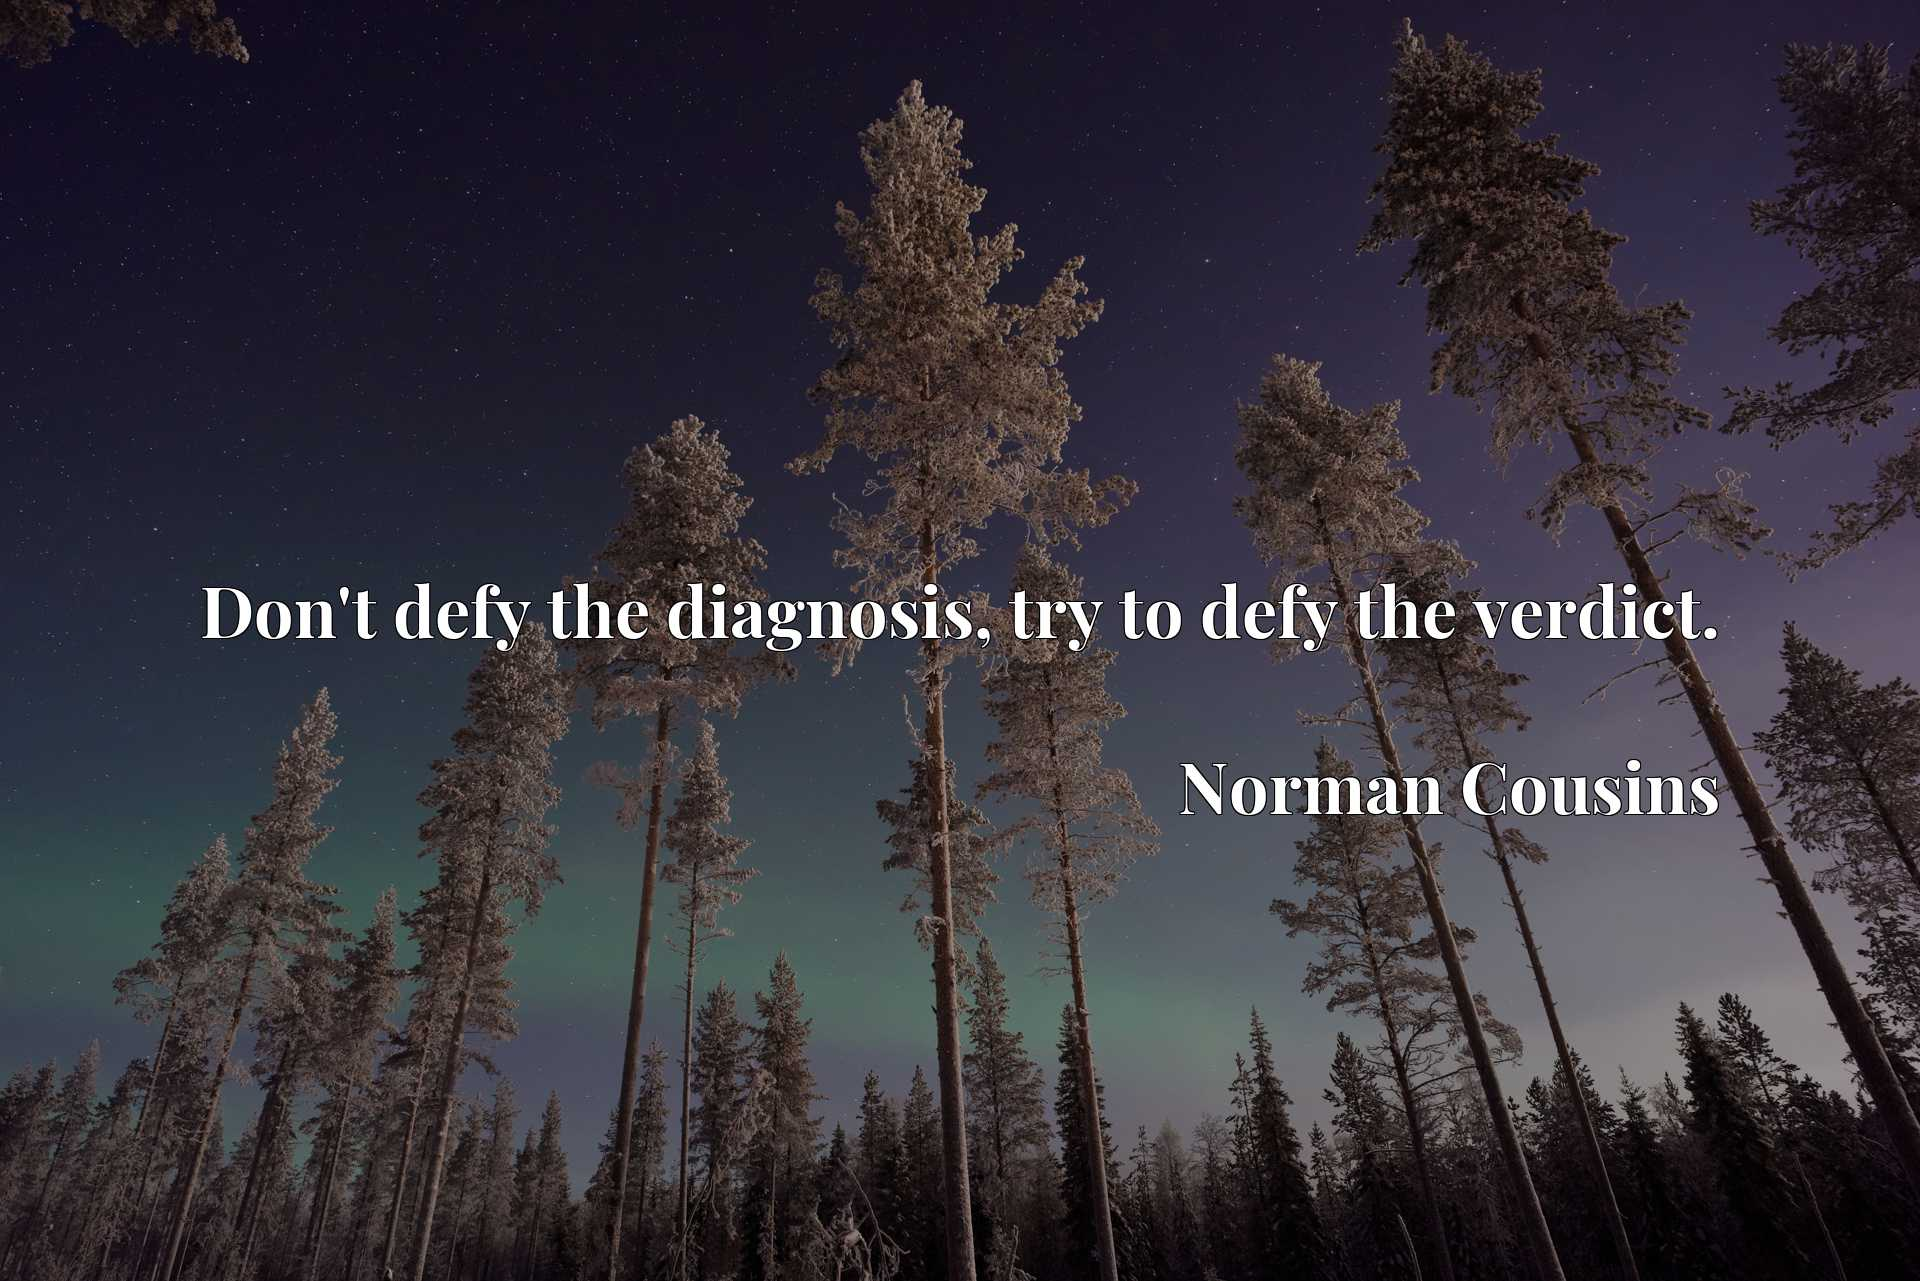 Don't defy the diagnosis, try to defy the verdict.